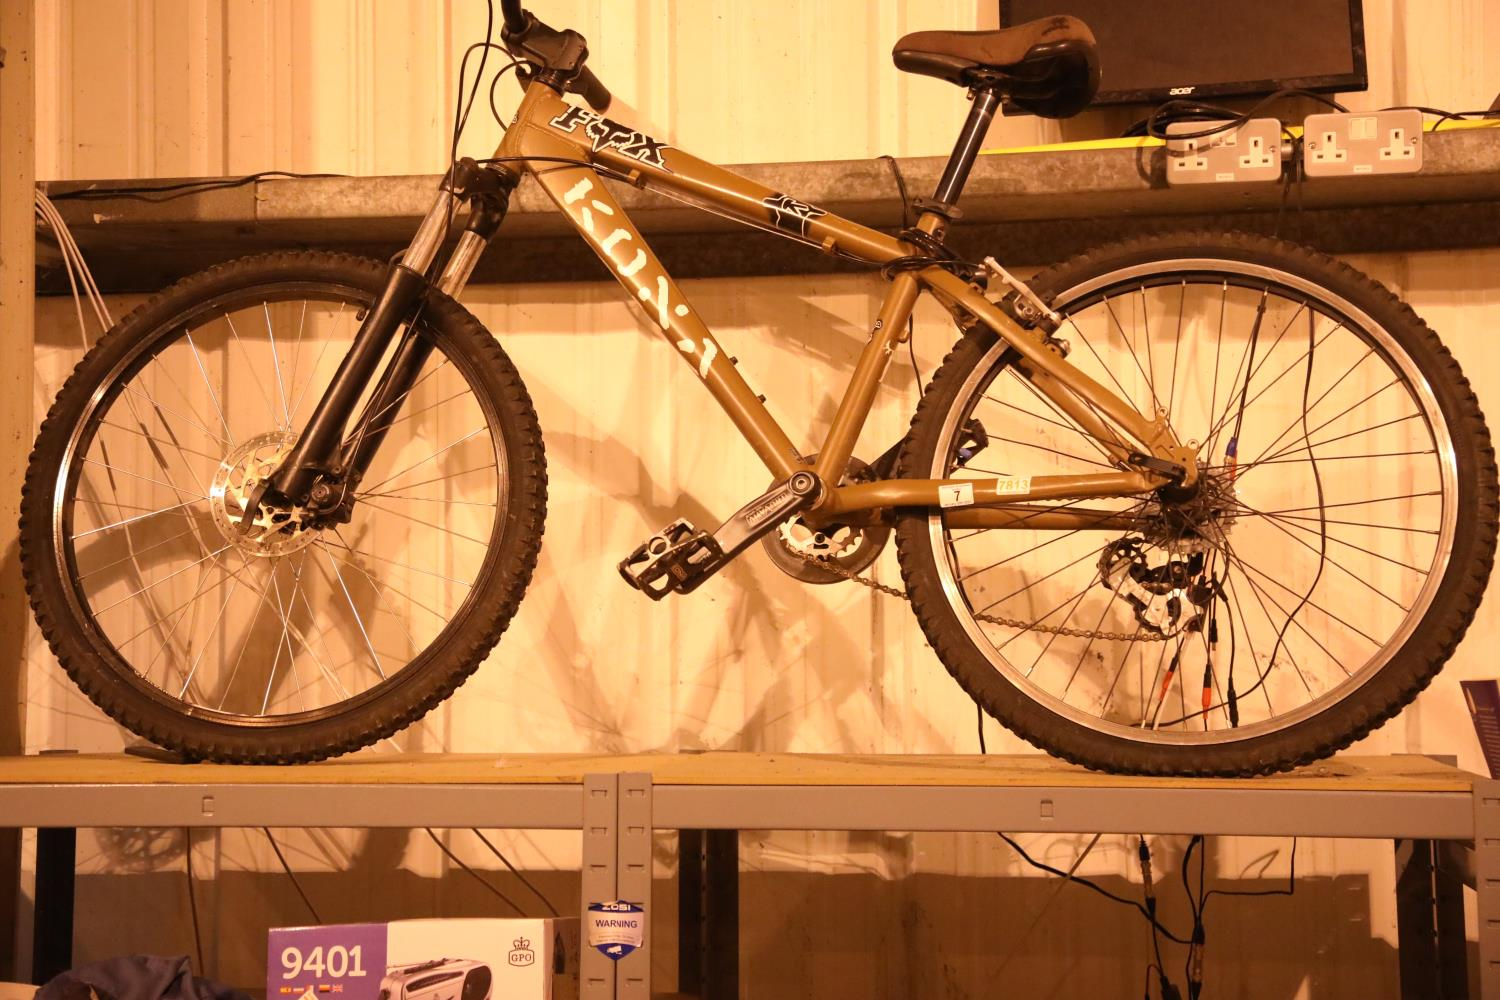 """Kona Shred 8 speed front suspension mountain bike with 15"""" frame. Not available for in-house P&P,"""